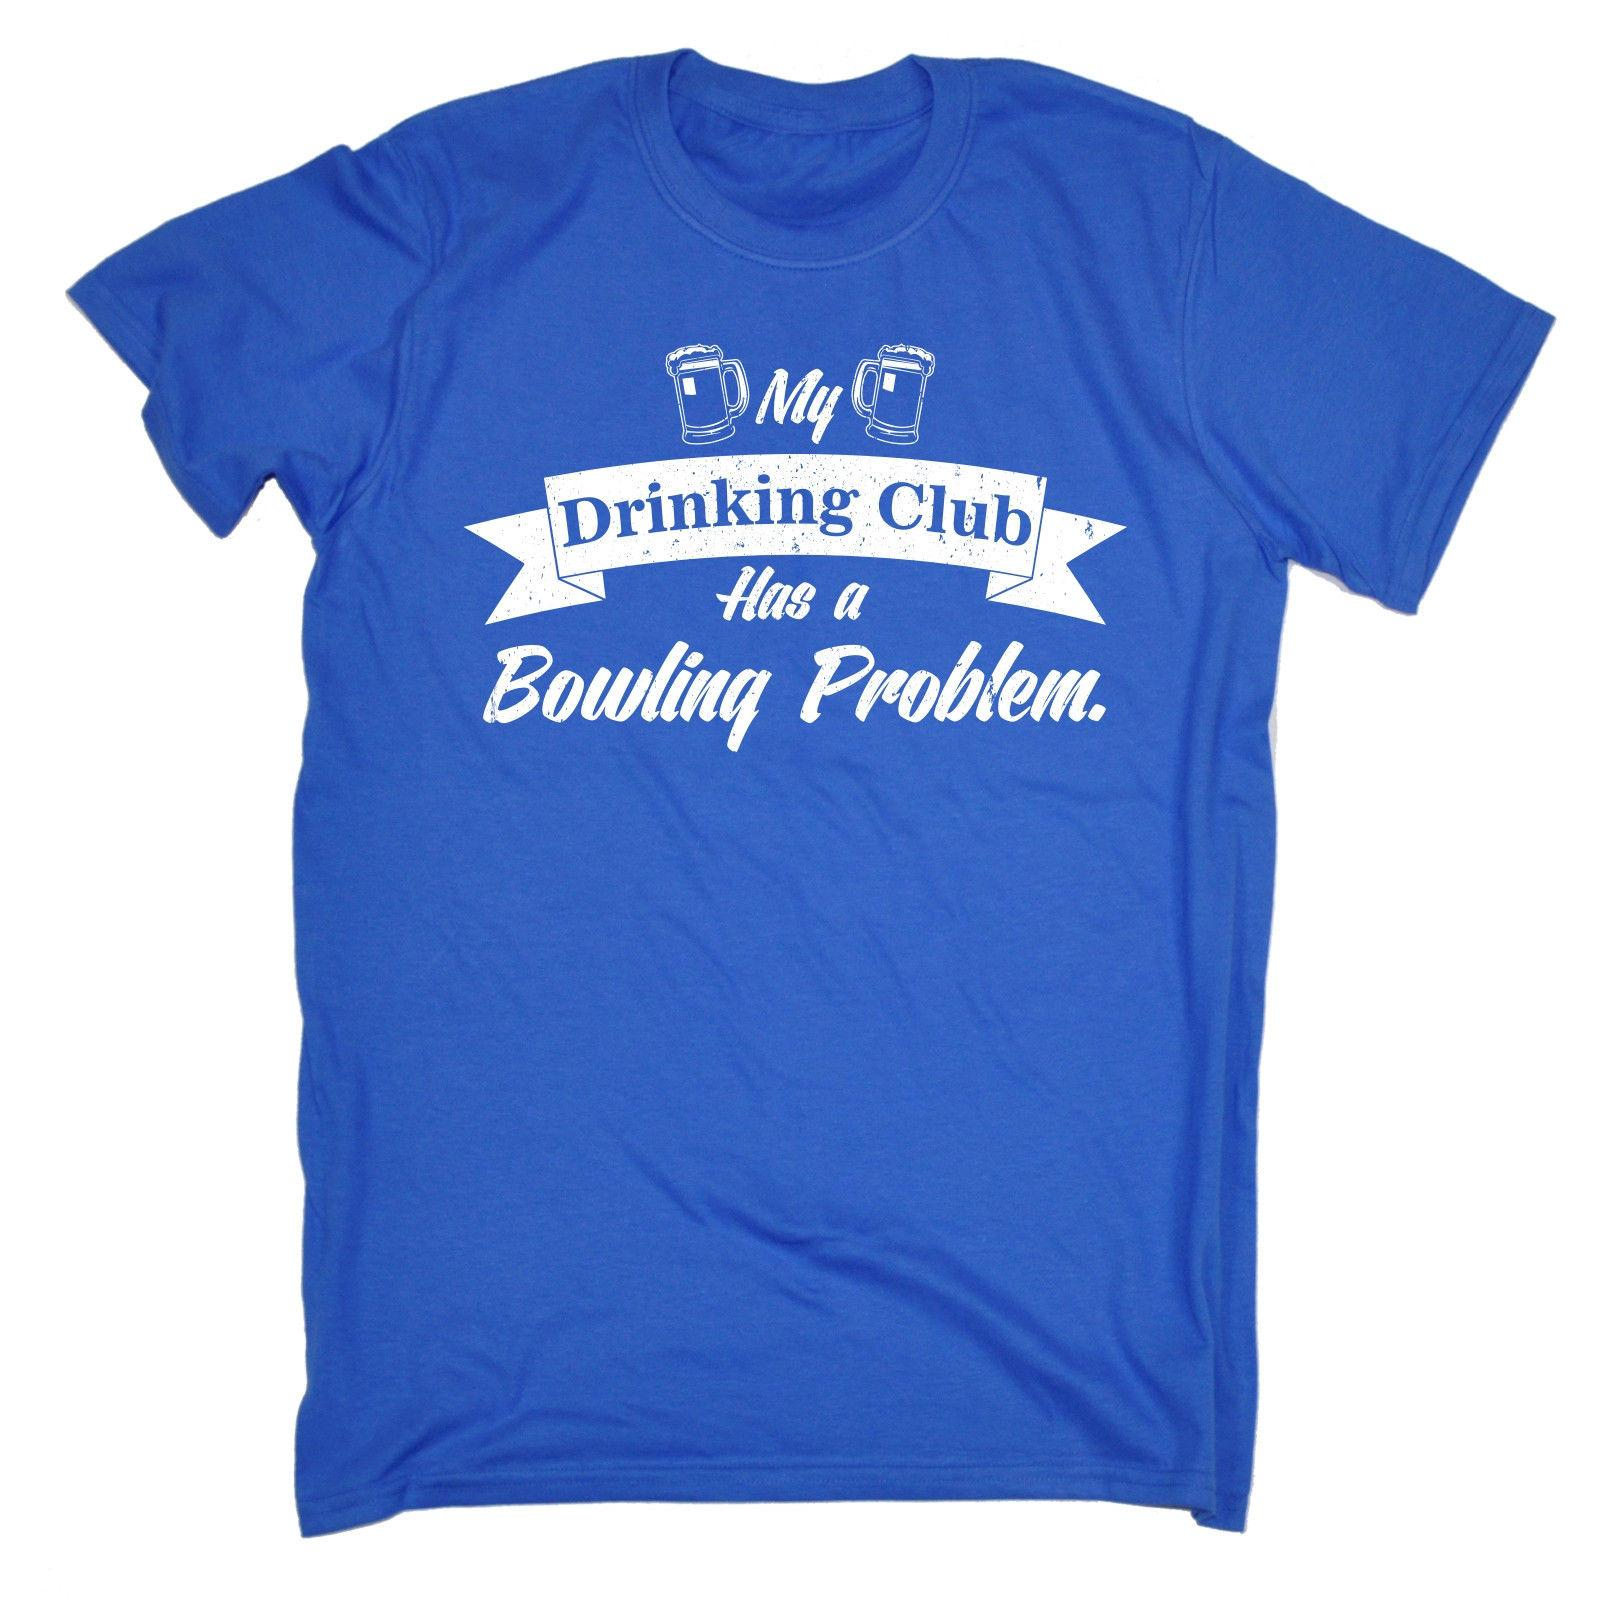 My Drinking Club Bowling Problem MENS T SHIRT Tee Birthday Beer Ten Pin Funny Casual Shirts Design Buy Online From Fatcuckoo